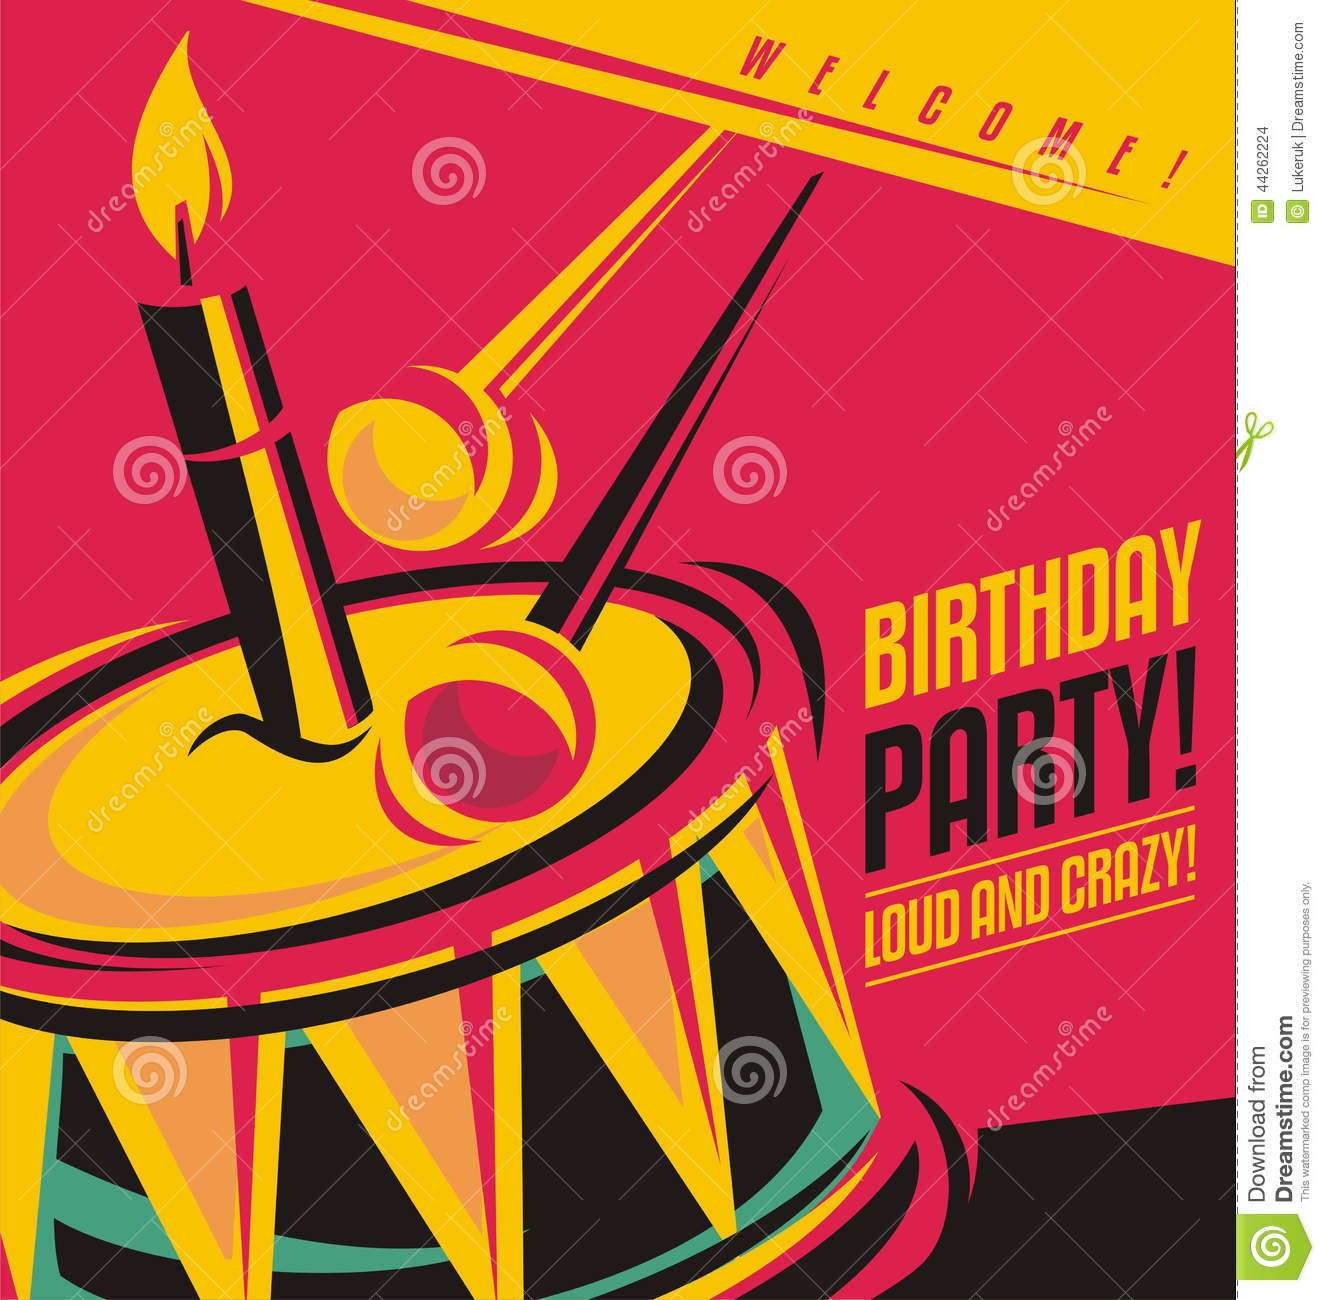 Birthday Party Invitation Template Stock Vector - Image ...